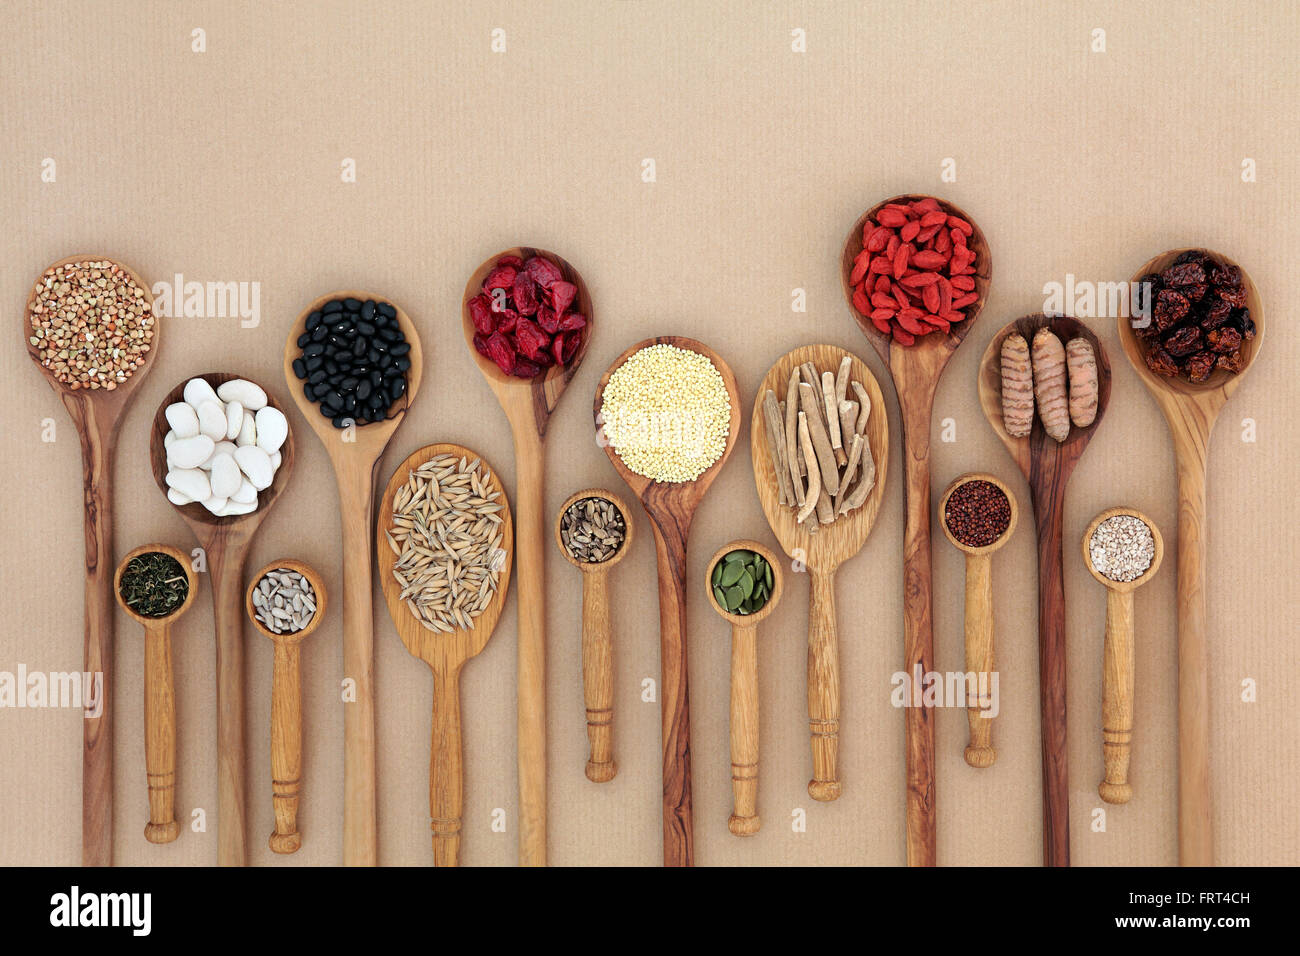 Superfood for good health in wooden spoons forming an abstract background with copy space. High in antioxidants - Stock Image